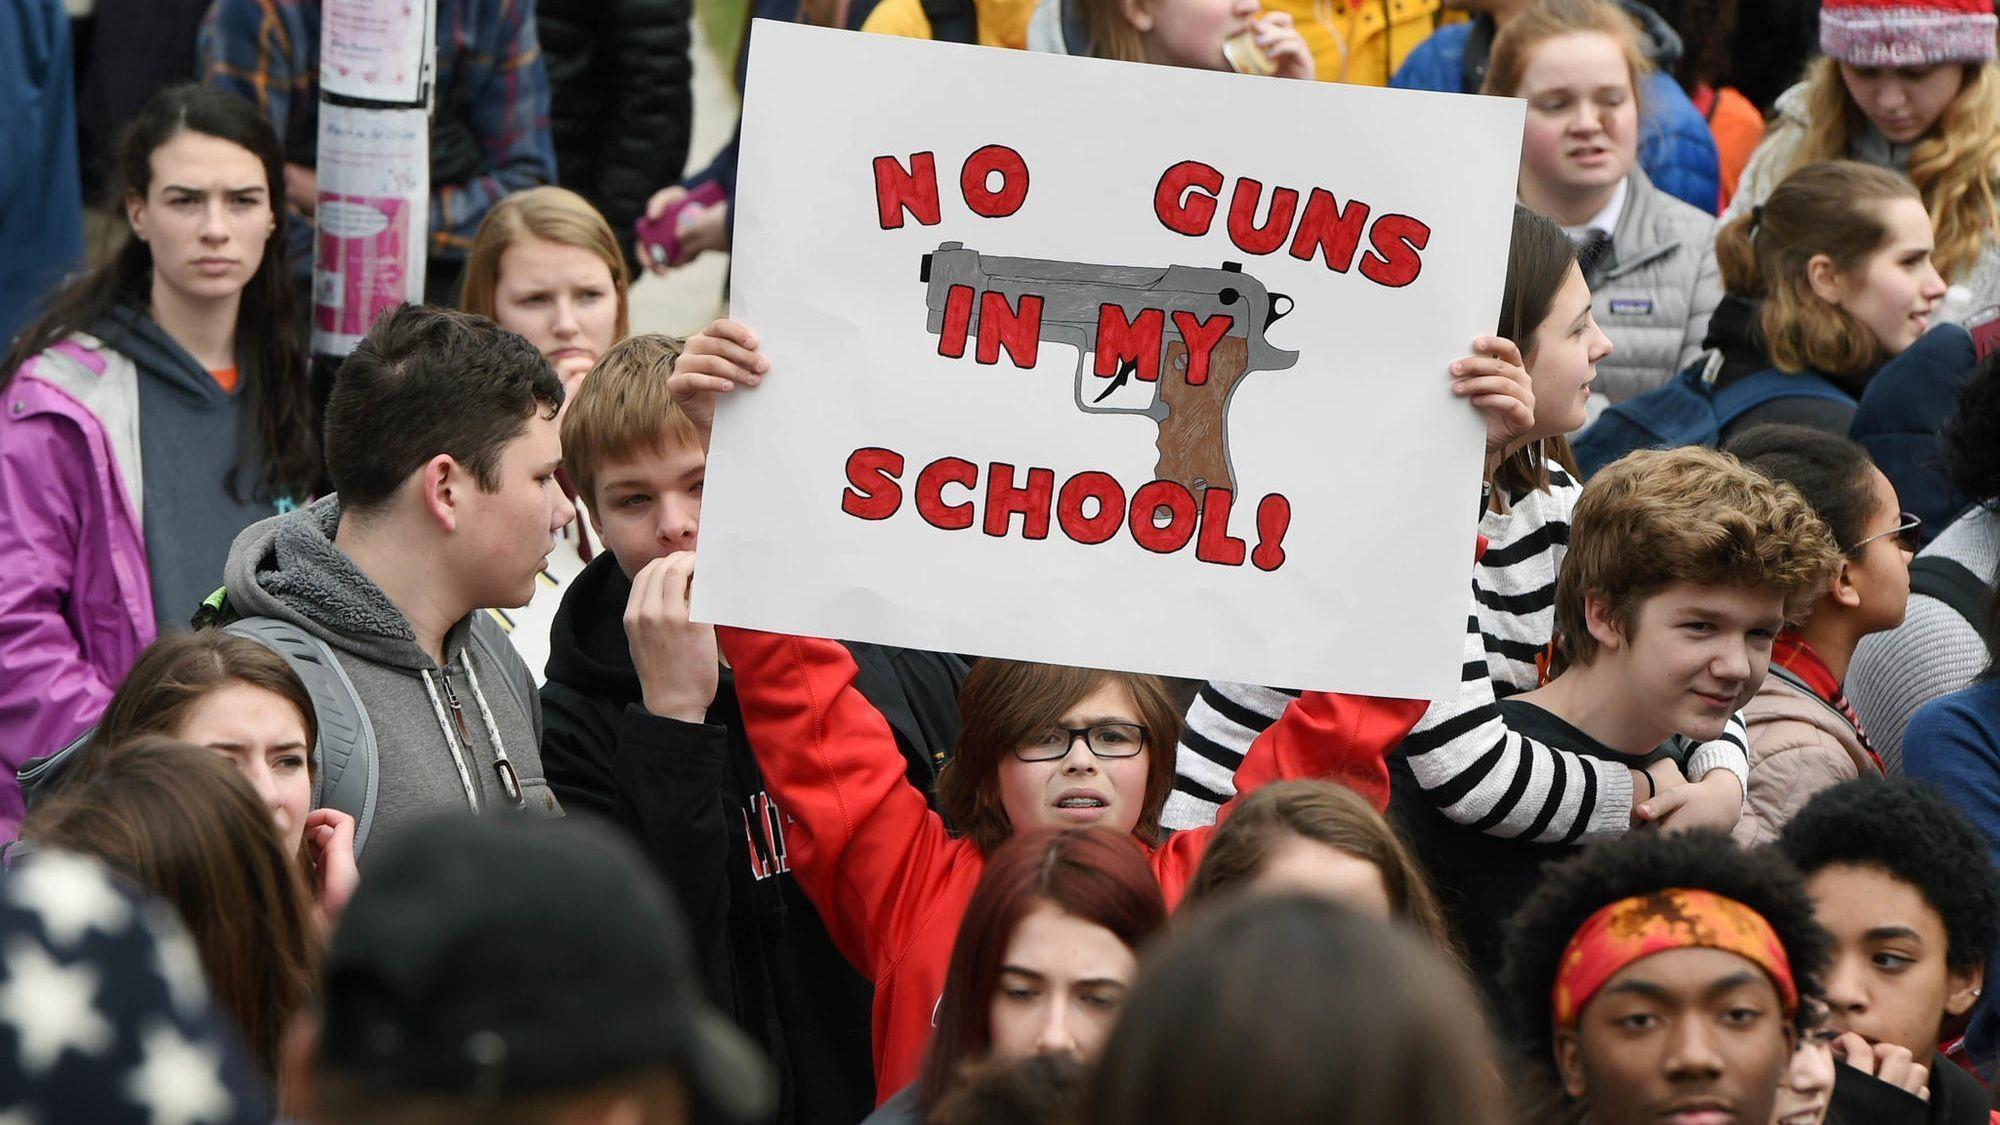 guns should be or should not be carried However, there are public places that have a no guns allowed policy even for gun owners who hold legal right-to-carry permits alert: should obama have more control over guns vote now.